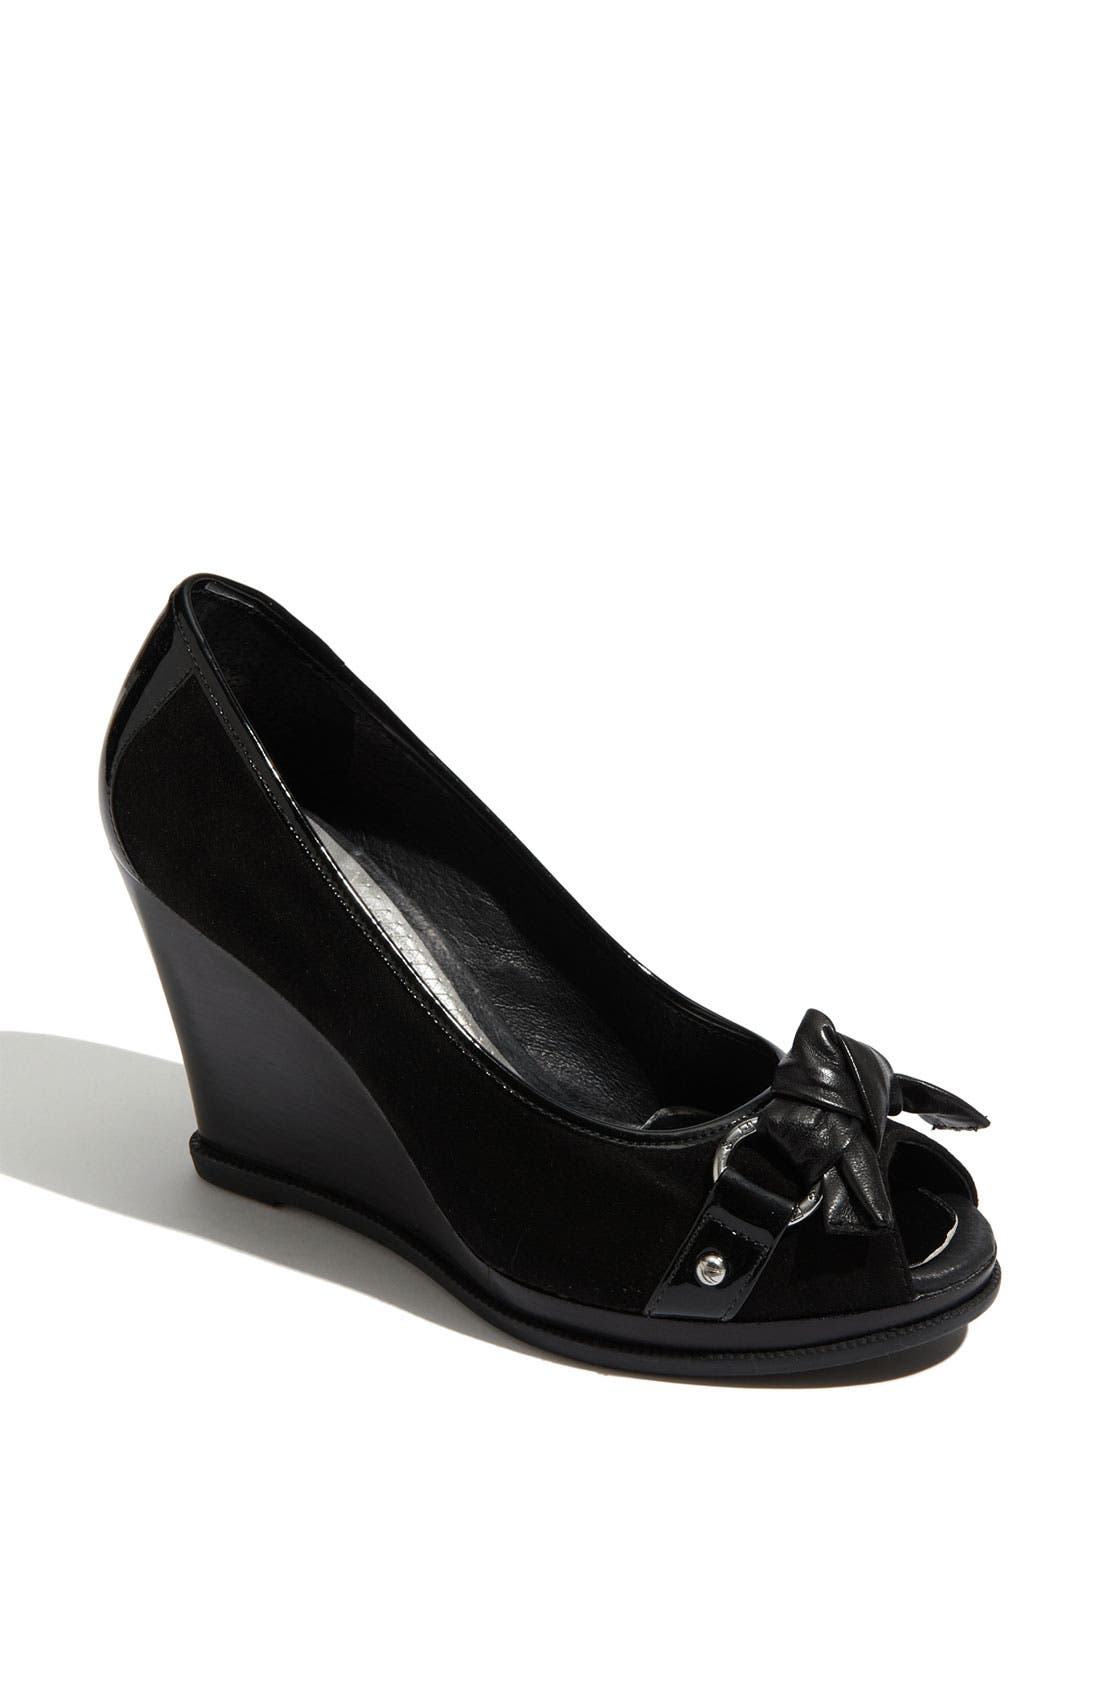 Main Image - Sperry Top-Sider® 'Silverside' Wedge Pump